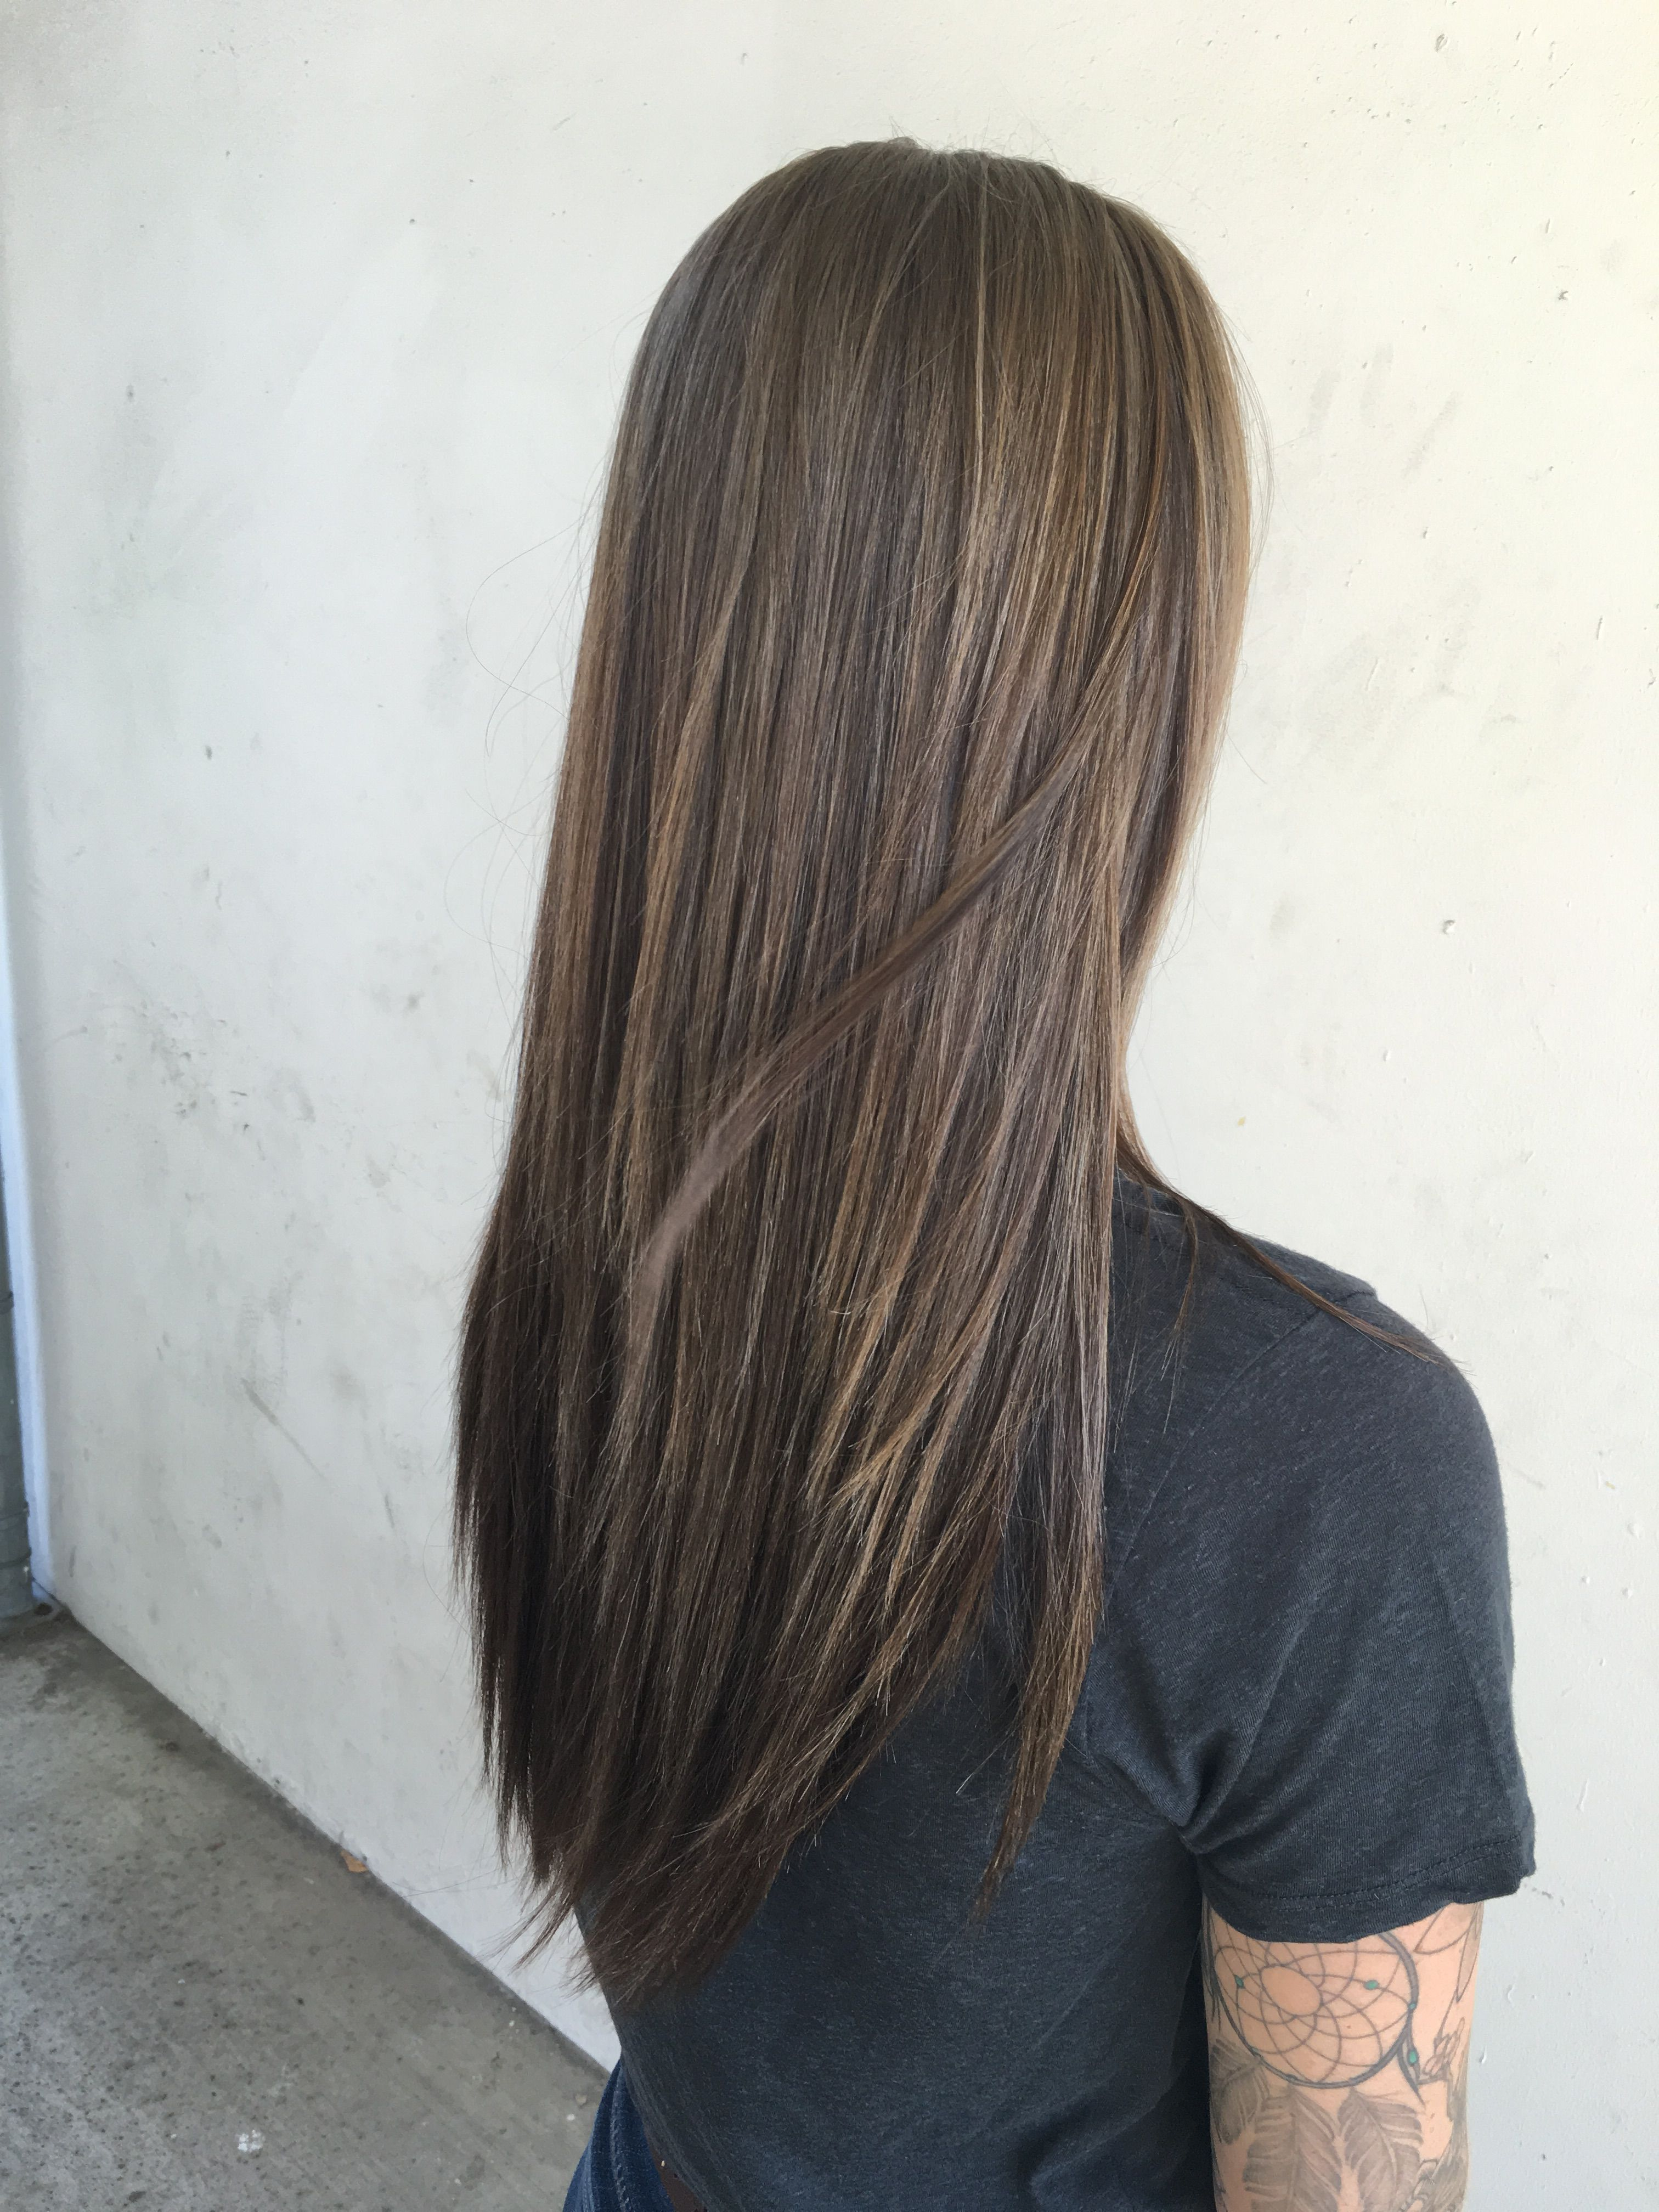 More Hair Styles Like This